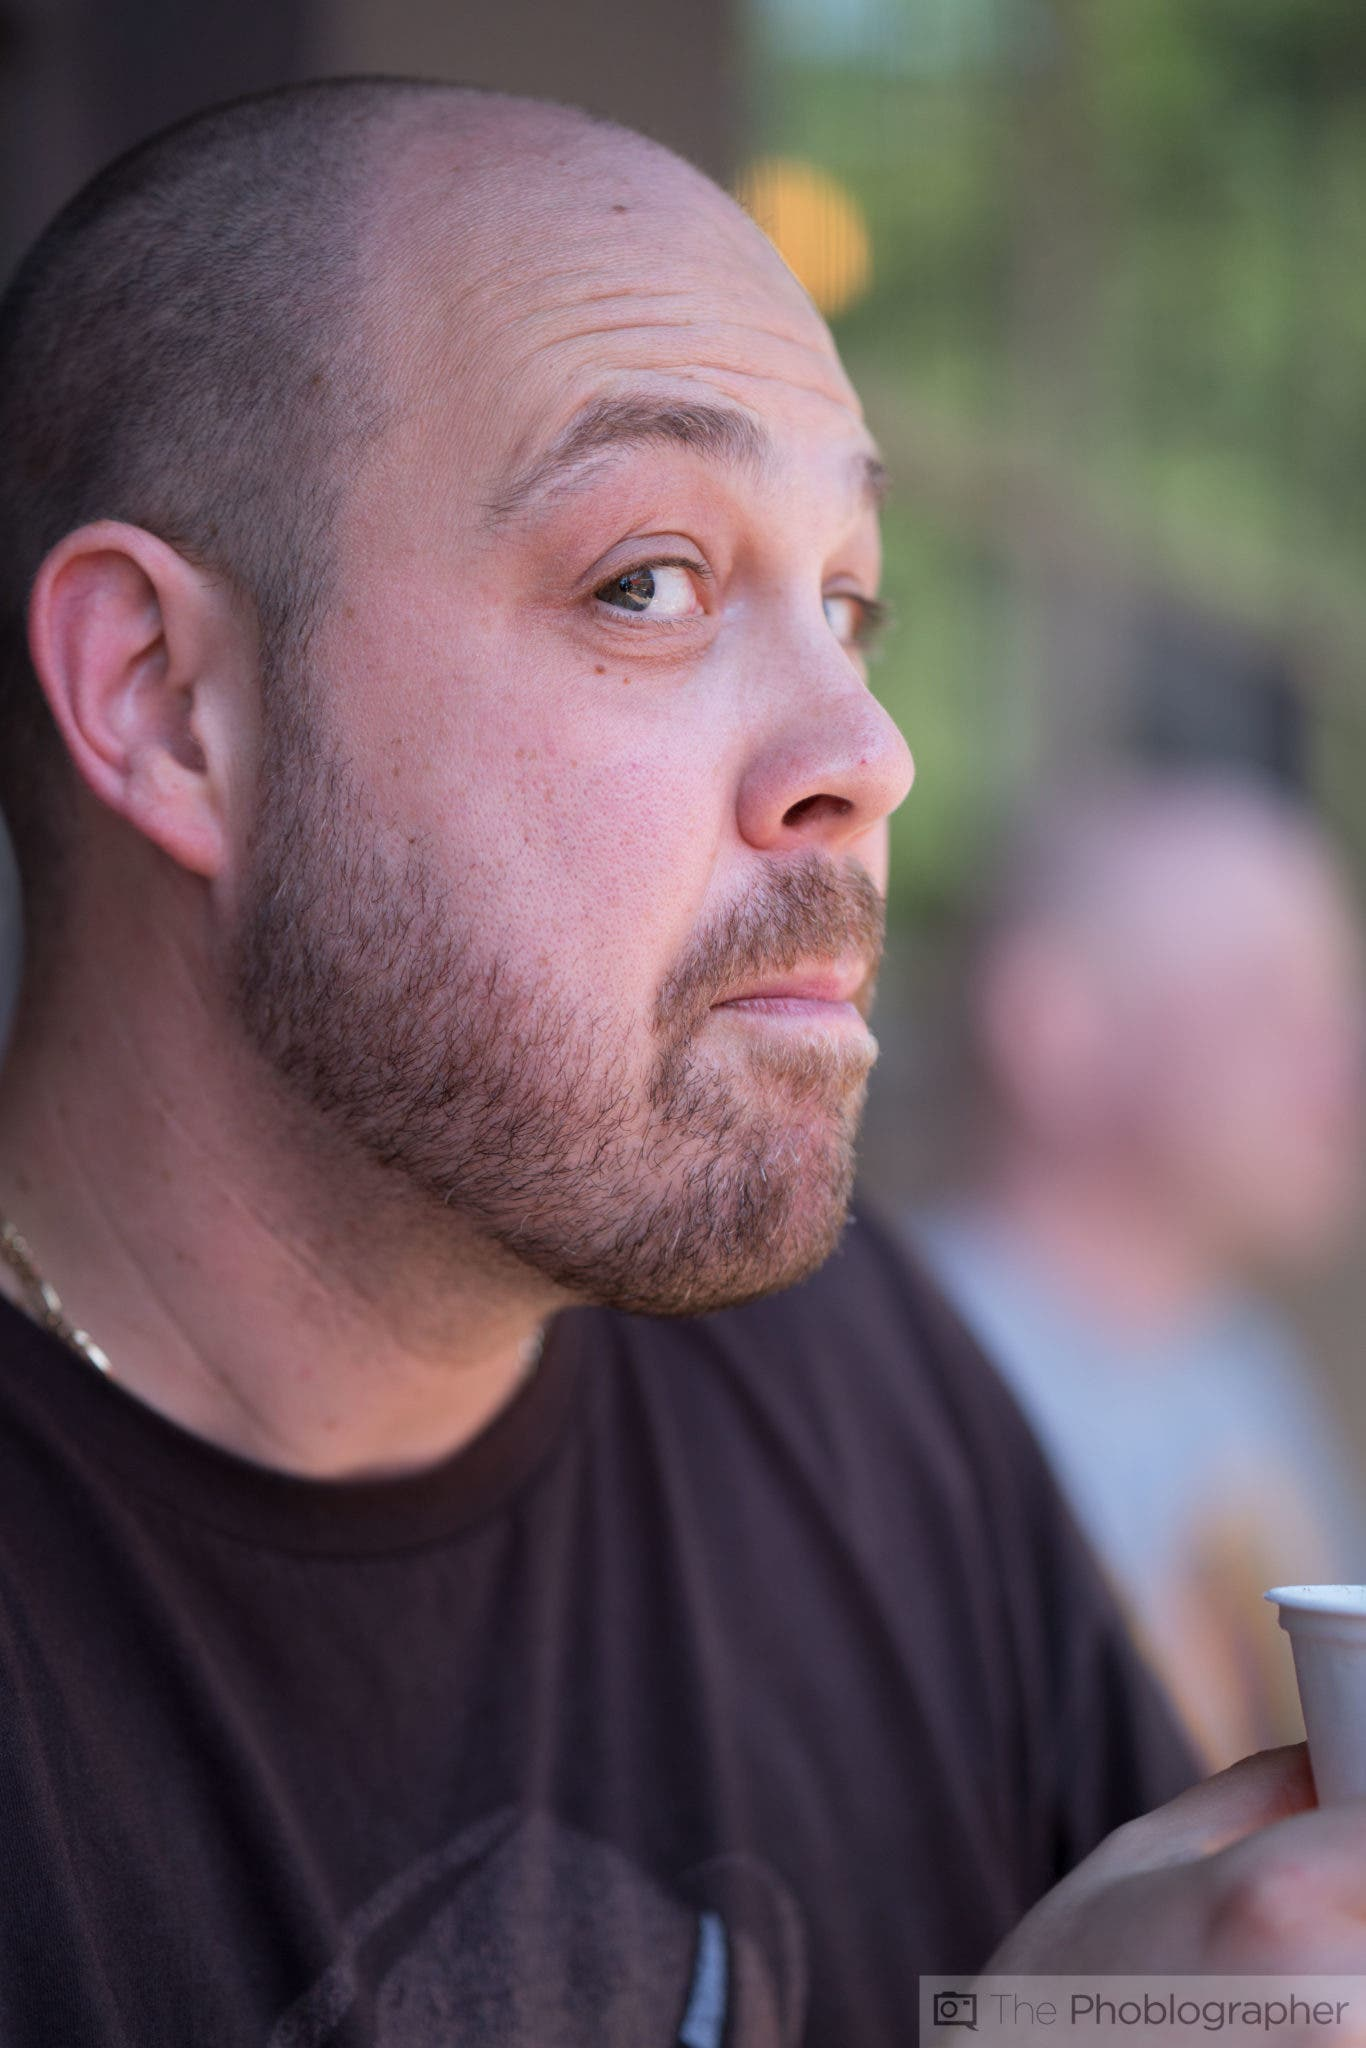 Chris Gampat The Phoblographer Zeiss 85mm f1.8 Batis lens review image samples (6 of 11)ISO 4001-1600 sec at f - 1.8